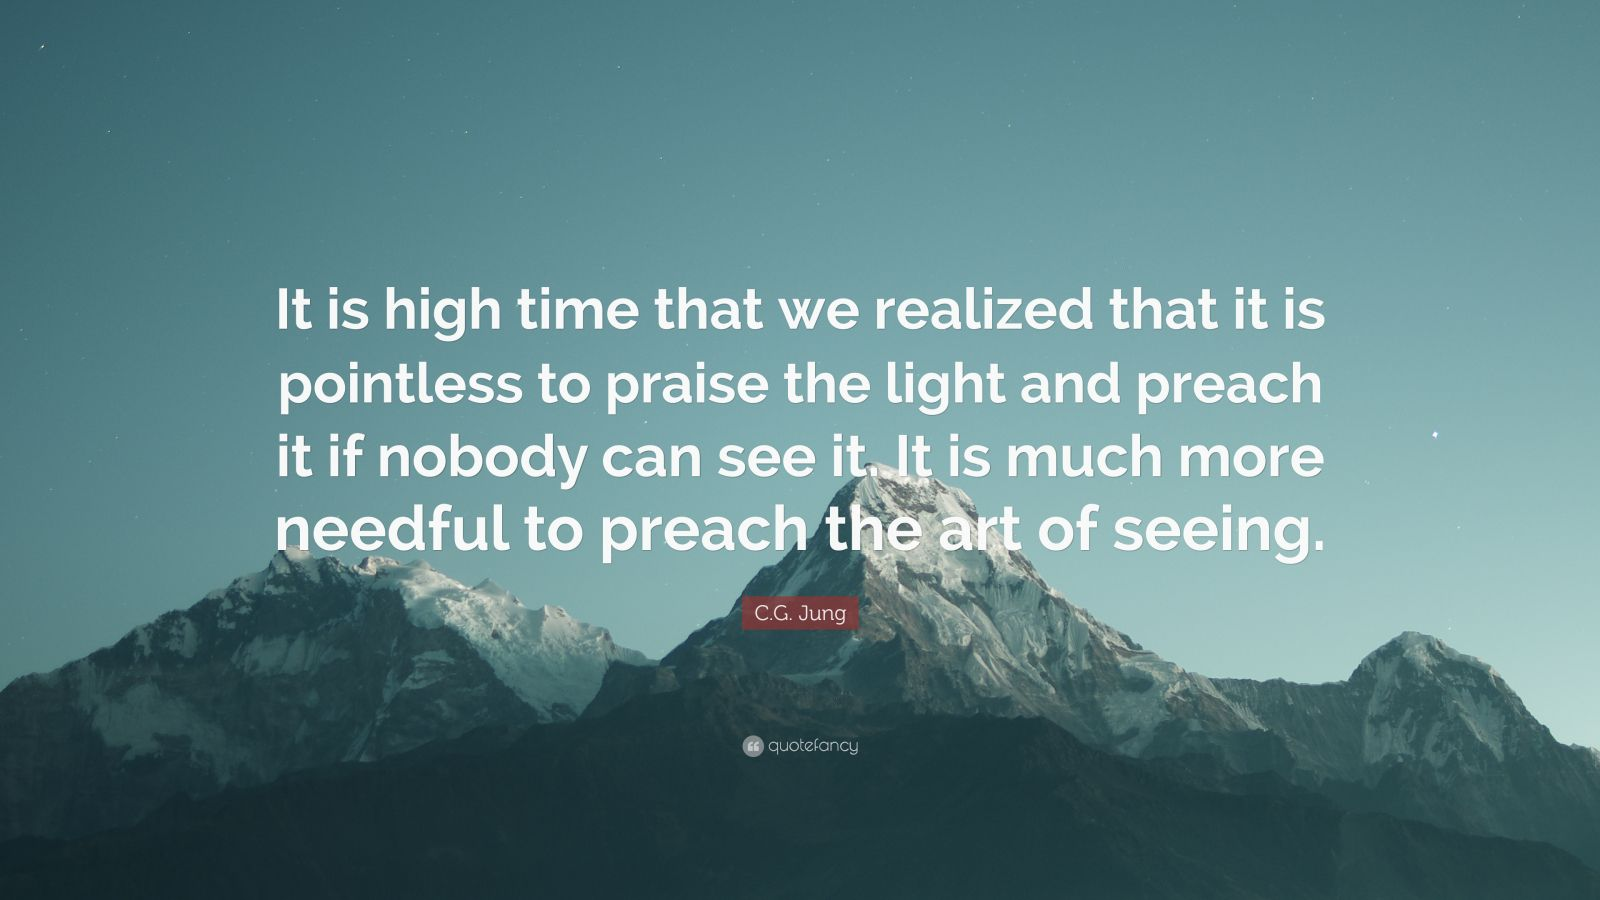 "C.G. Jung Quote: ""It is high time that we realized that it is pointless to praise the light and preach it if nobody can see it. It is much more needful to preach the art of seeing."""